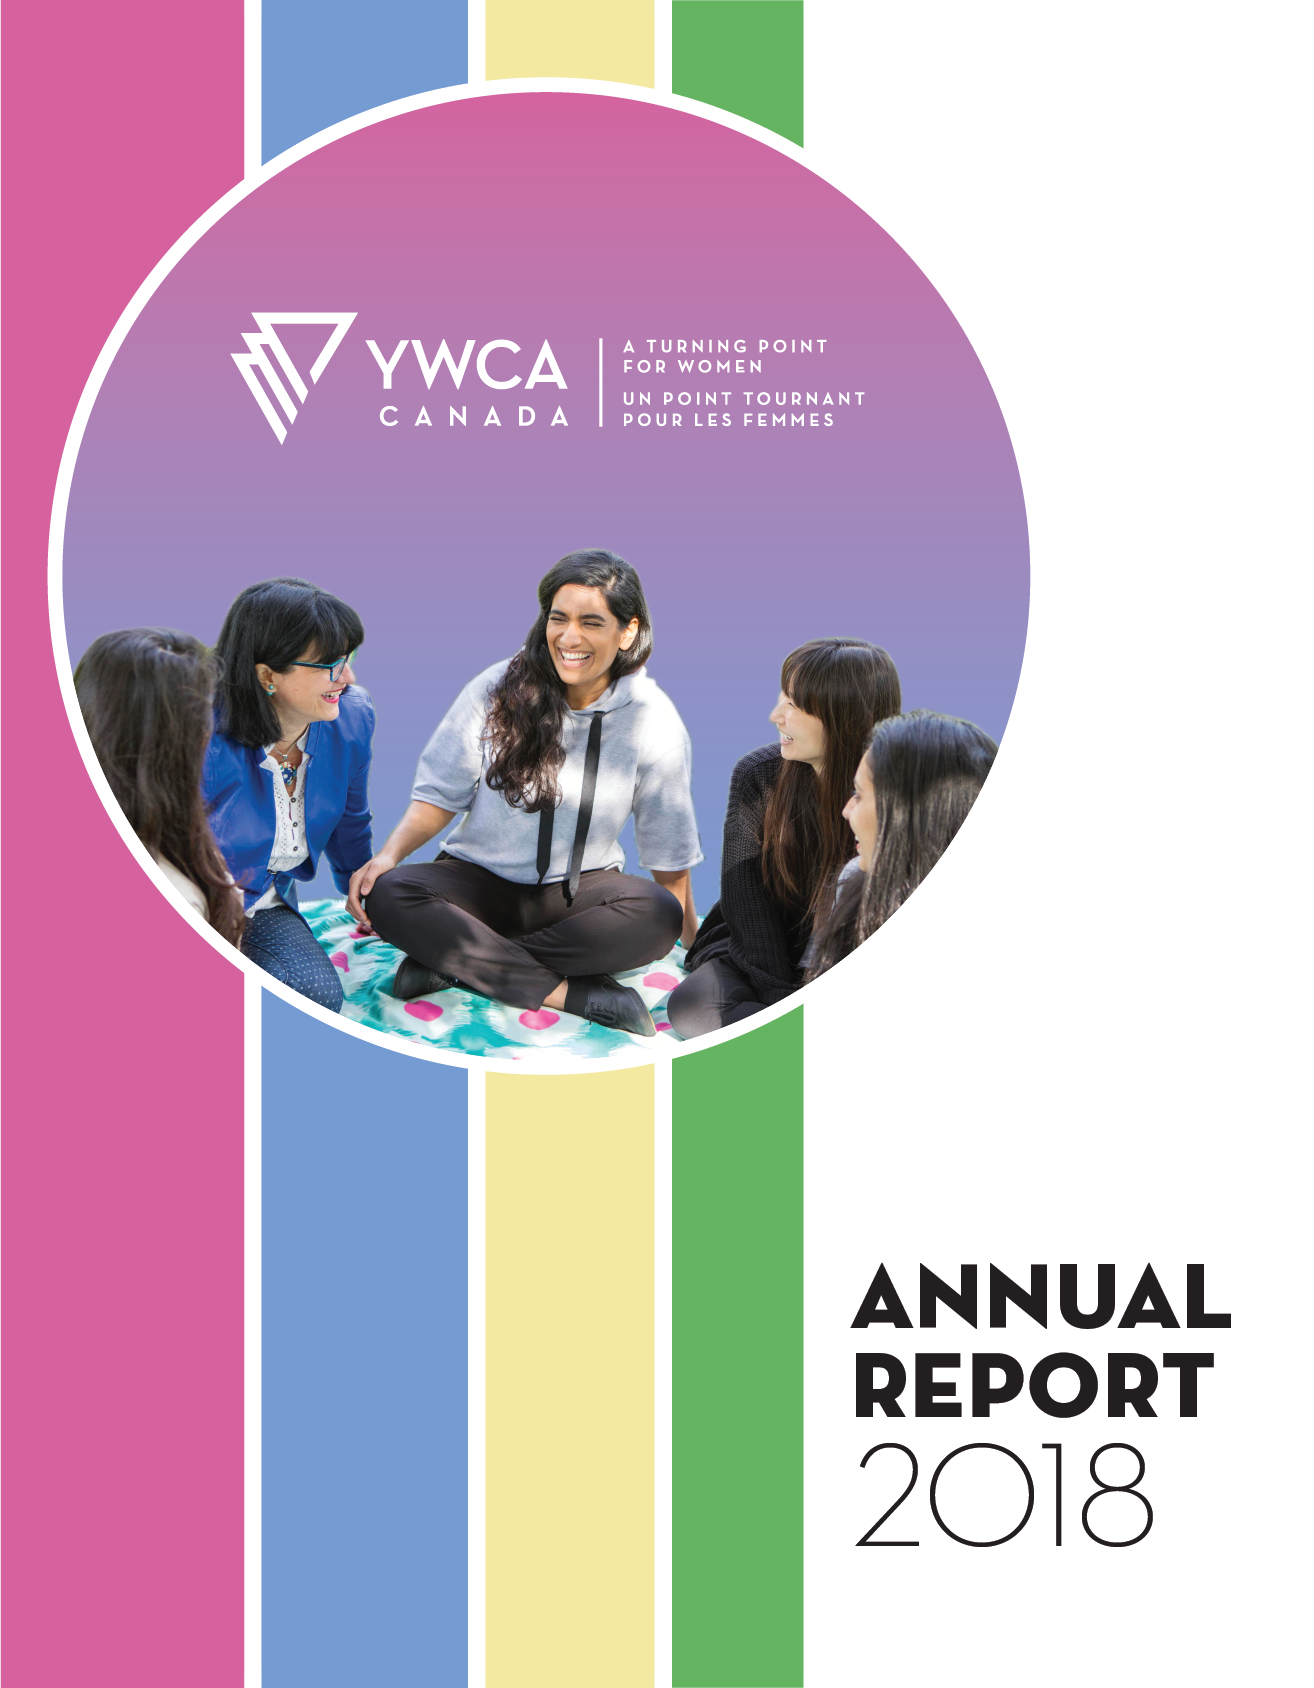 YWCA Annual Report 2018